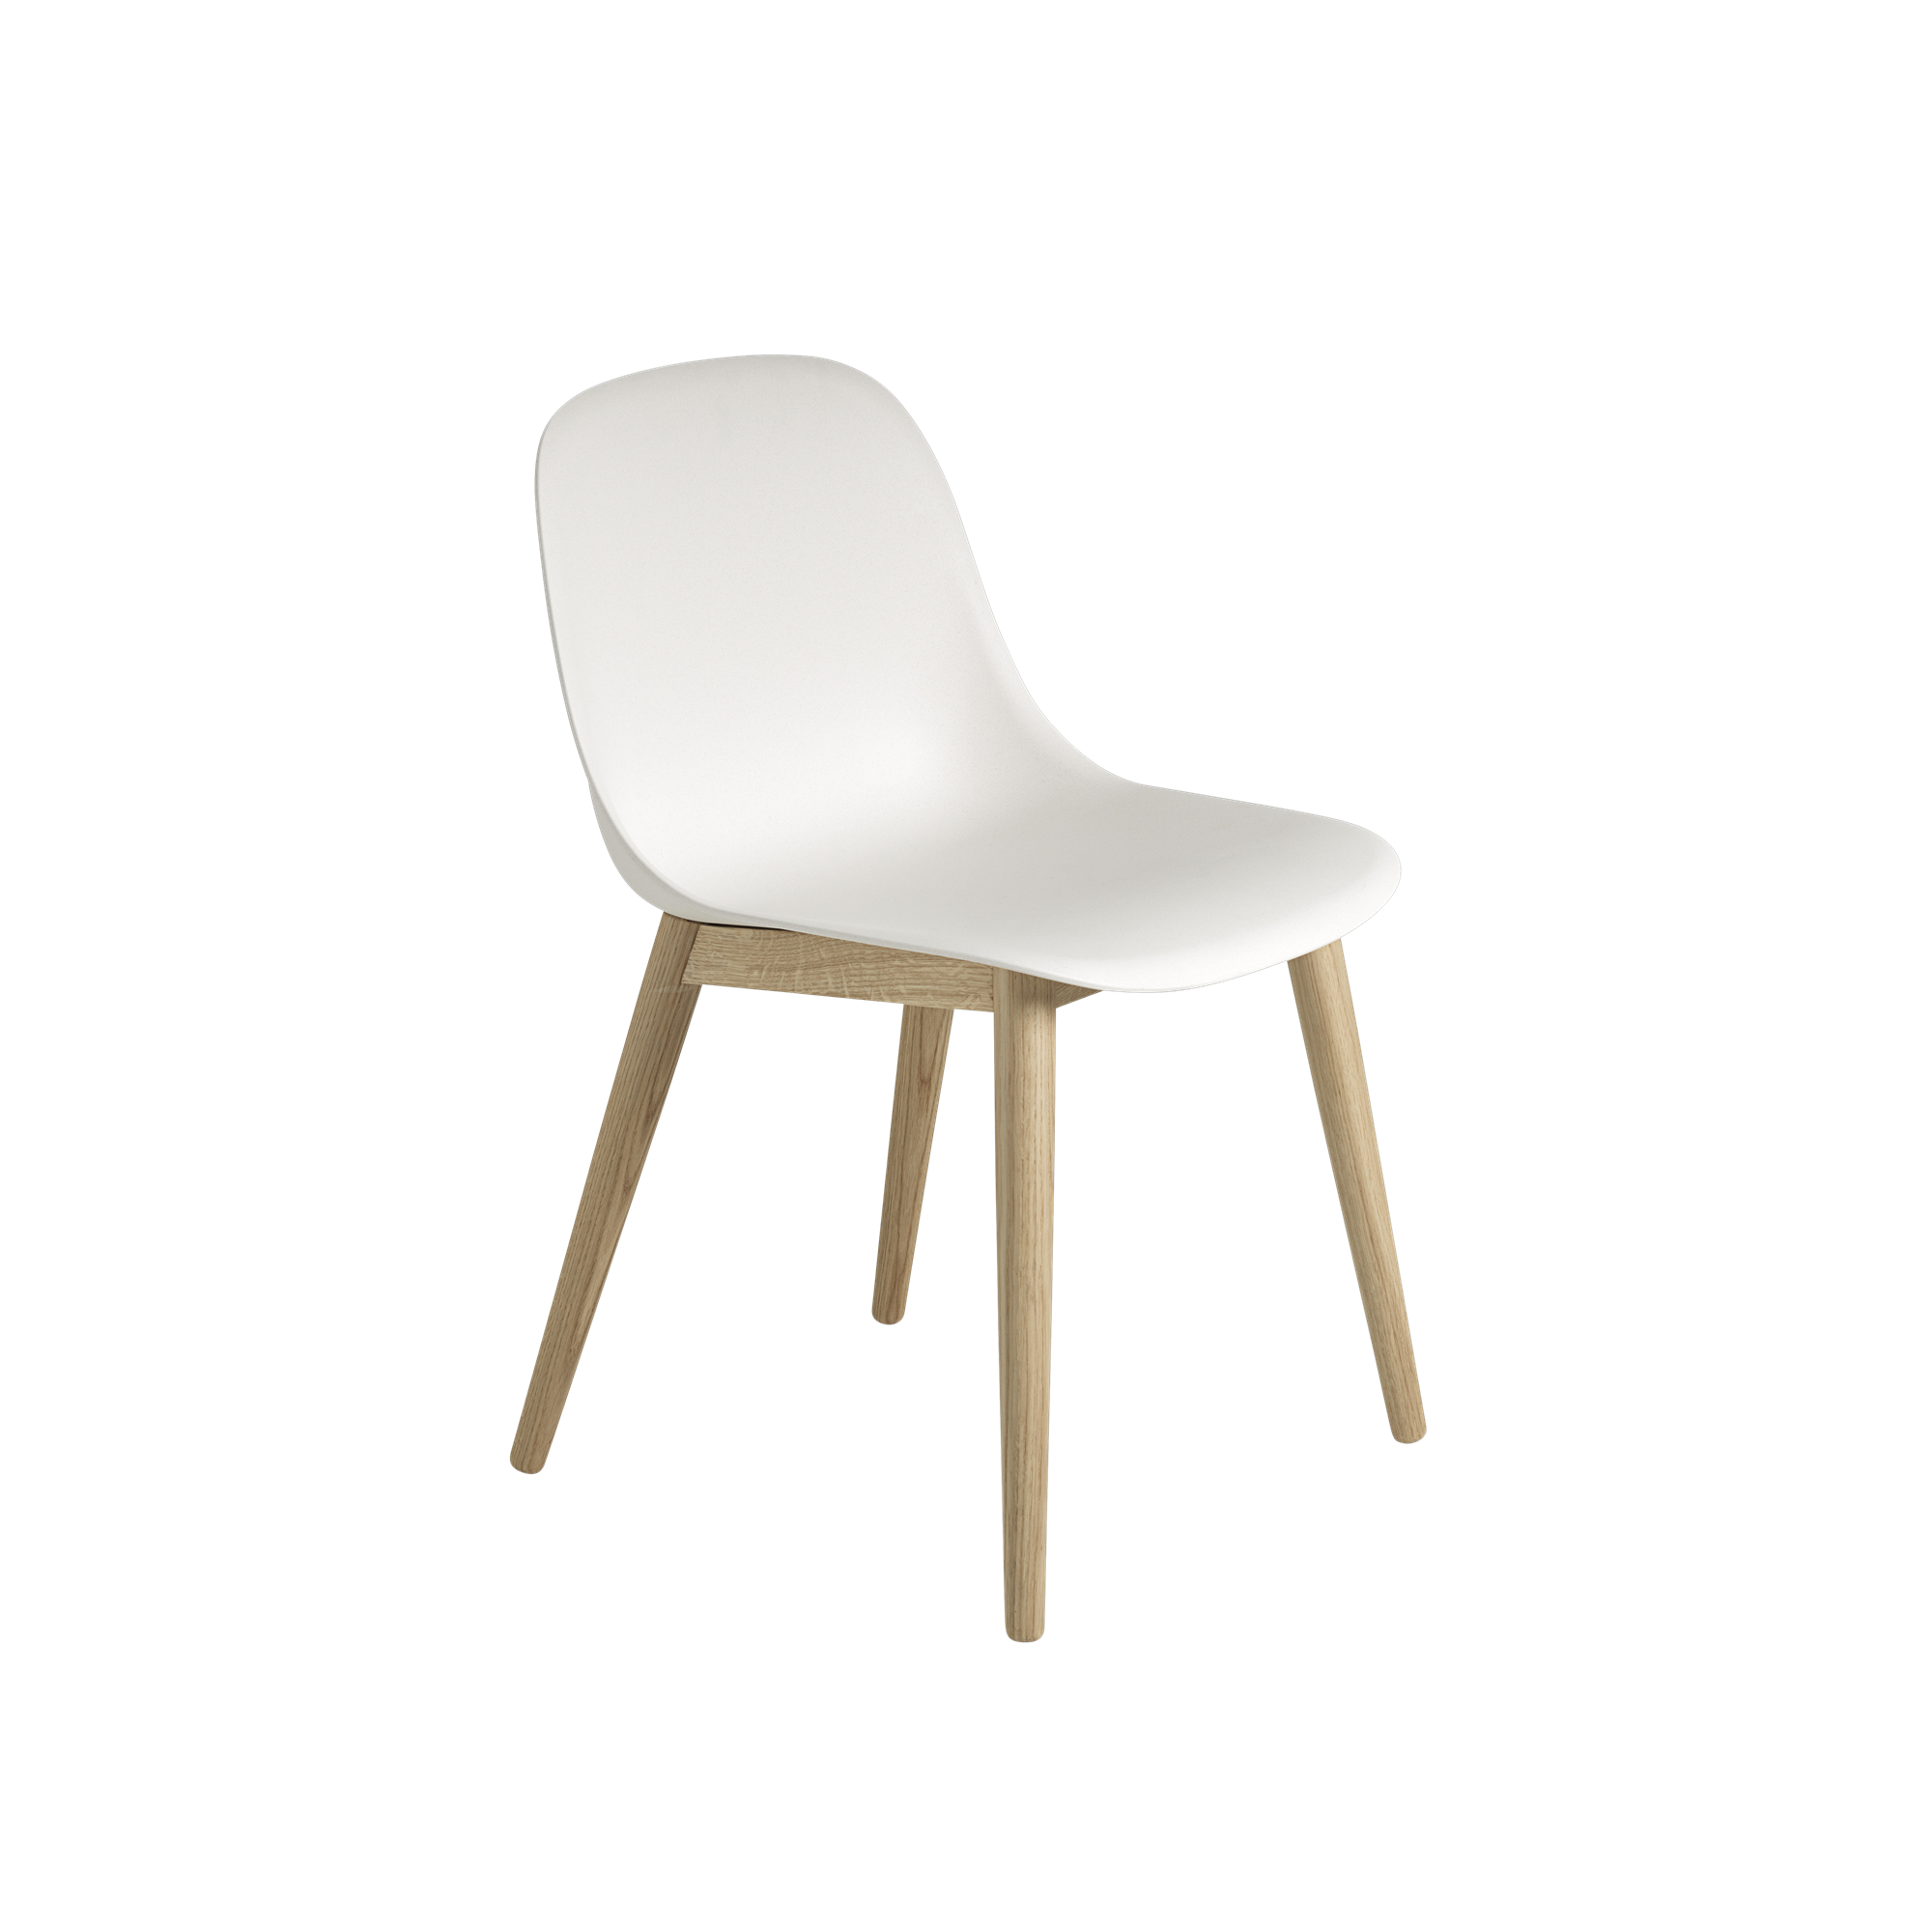 With Its Curved Silhouette And Refined Wooden Base The Fiber Side Chair Adds A Modern Sentiment To Any Space Side Chairs Wood Chair Fiber Siding